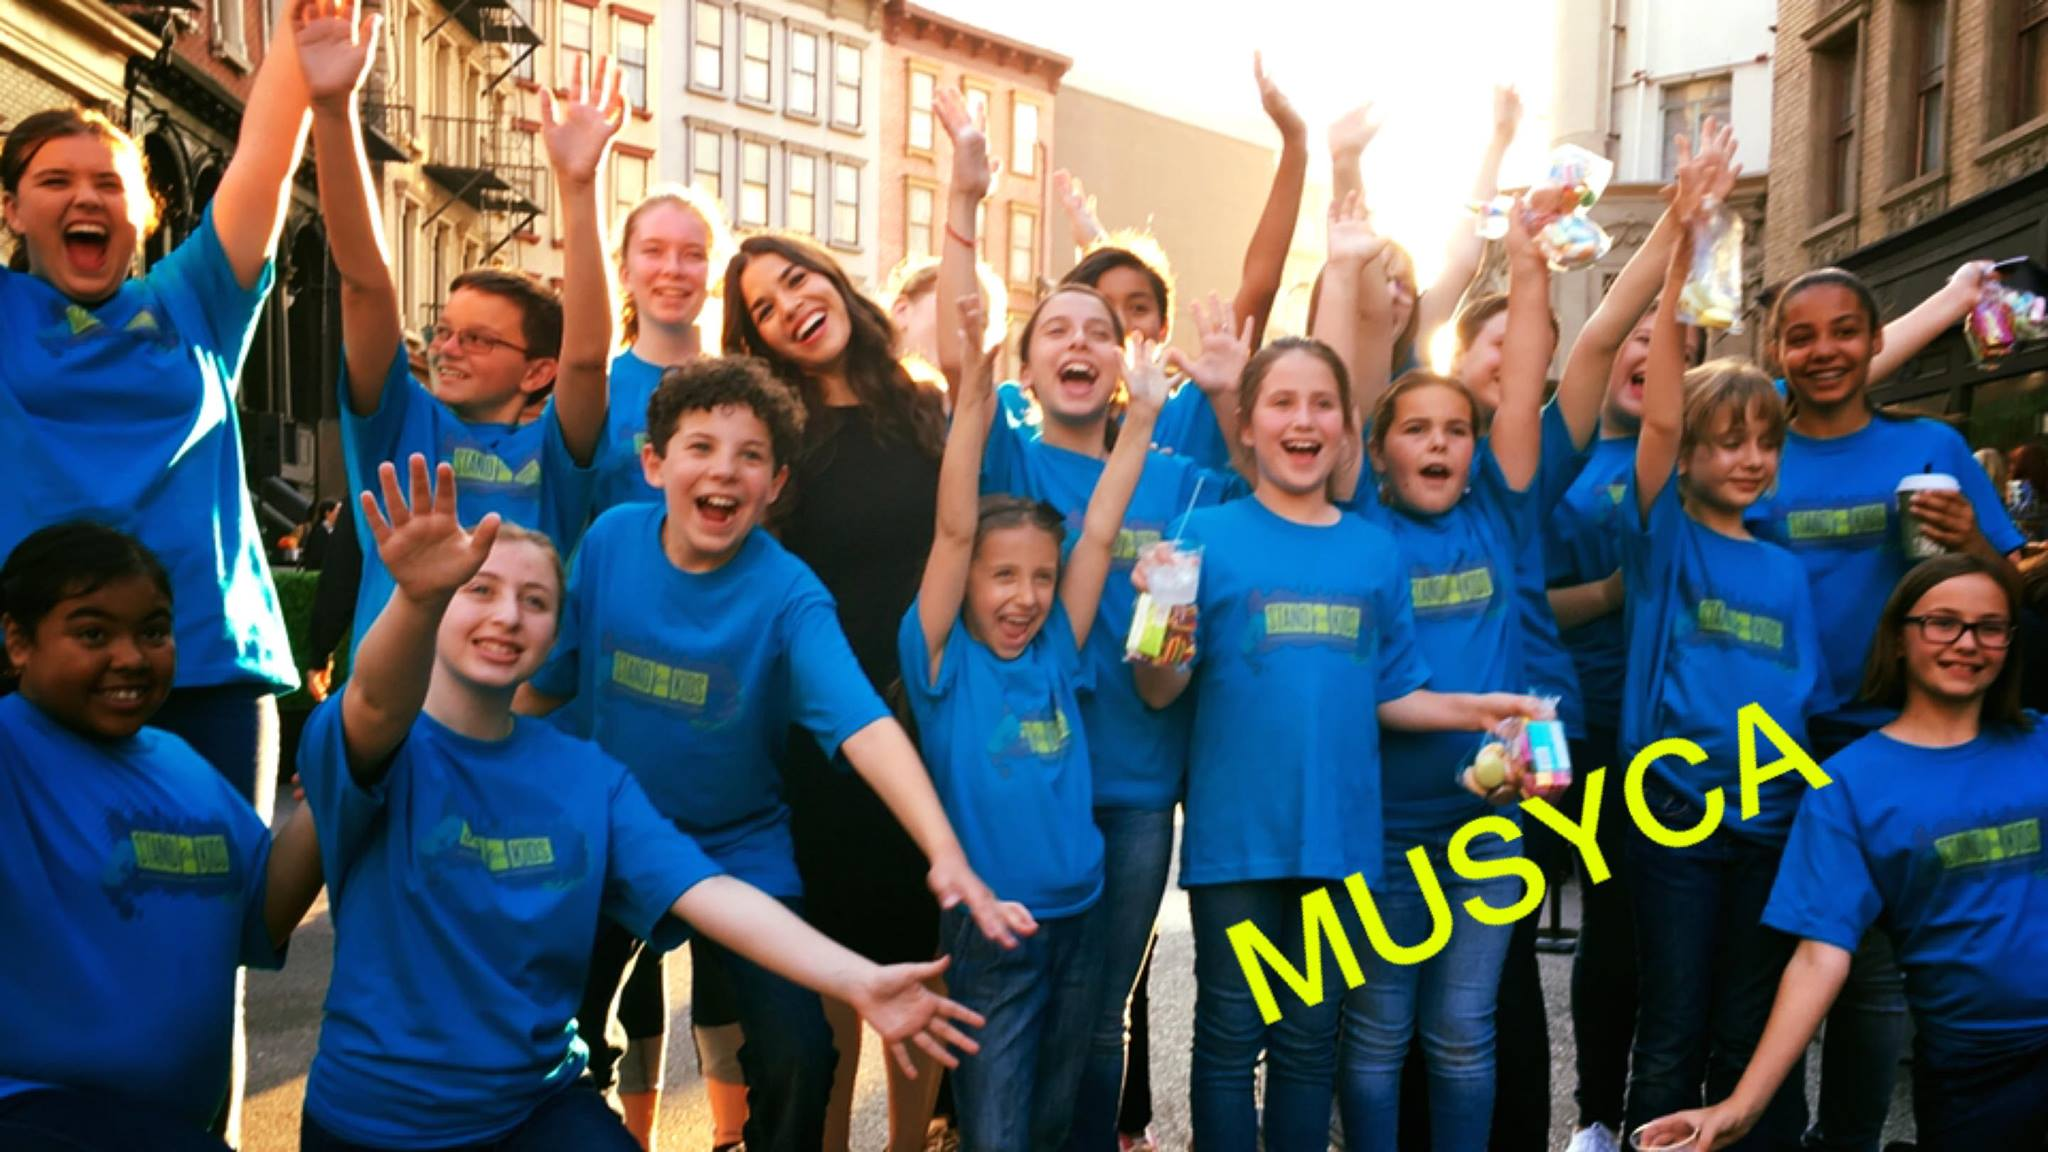 MUSYCA singers with America Ferrera 20th Century Fox